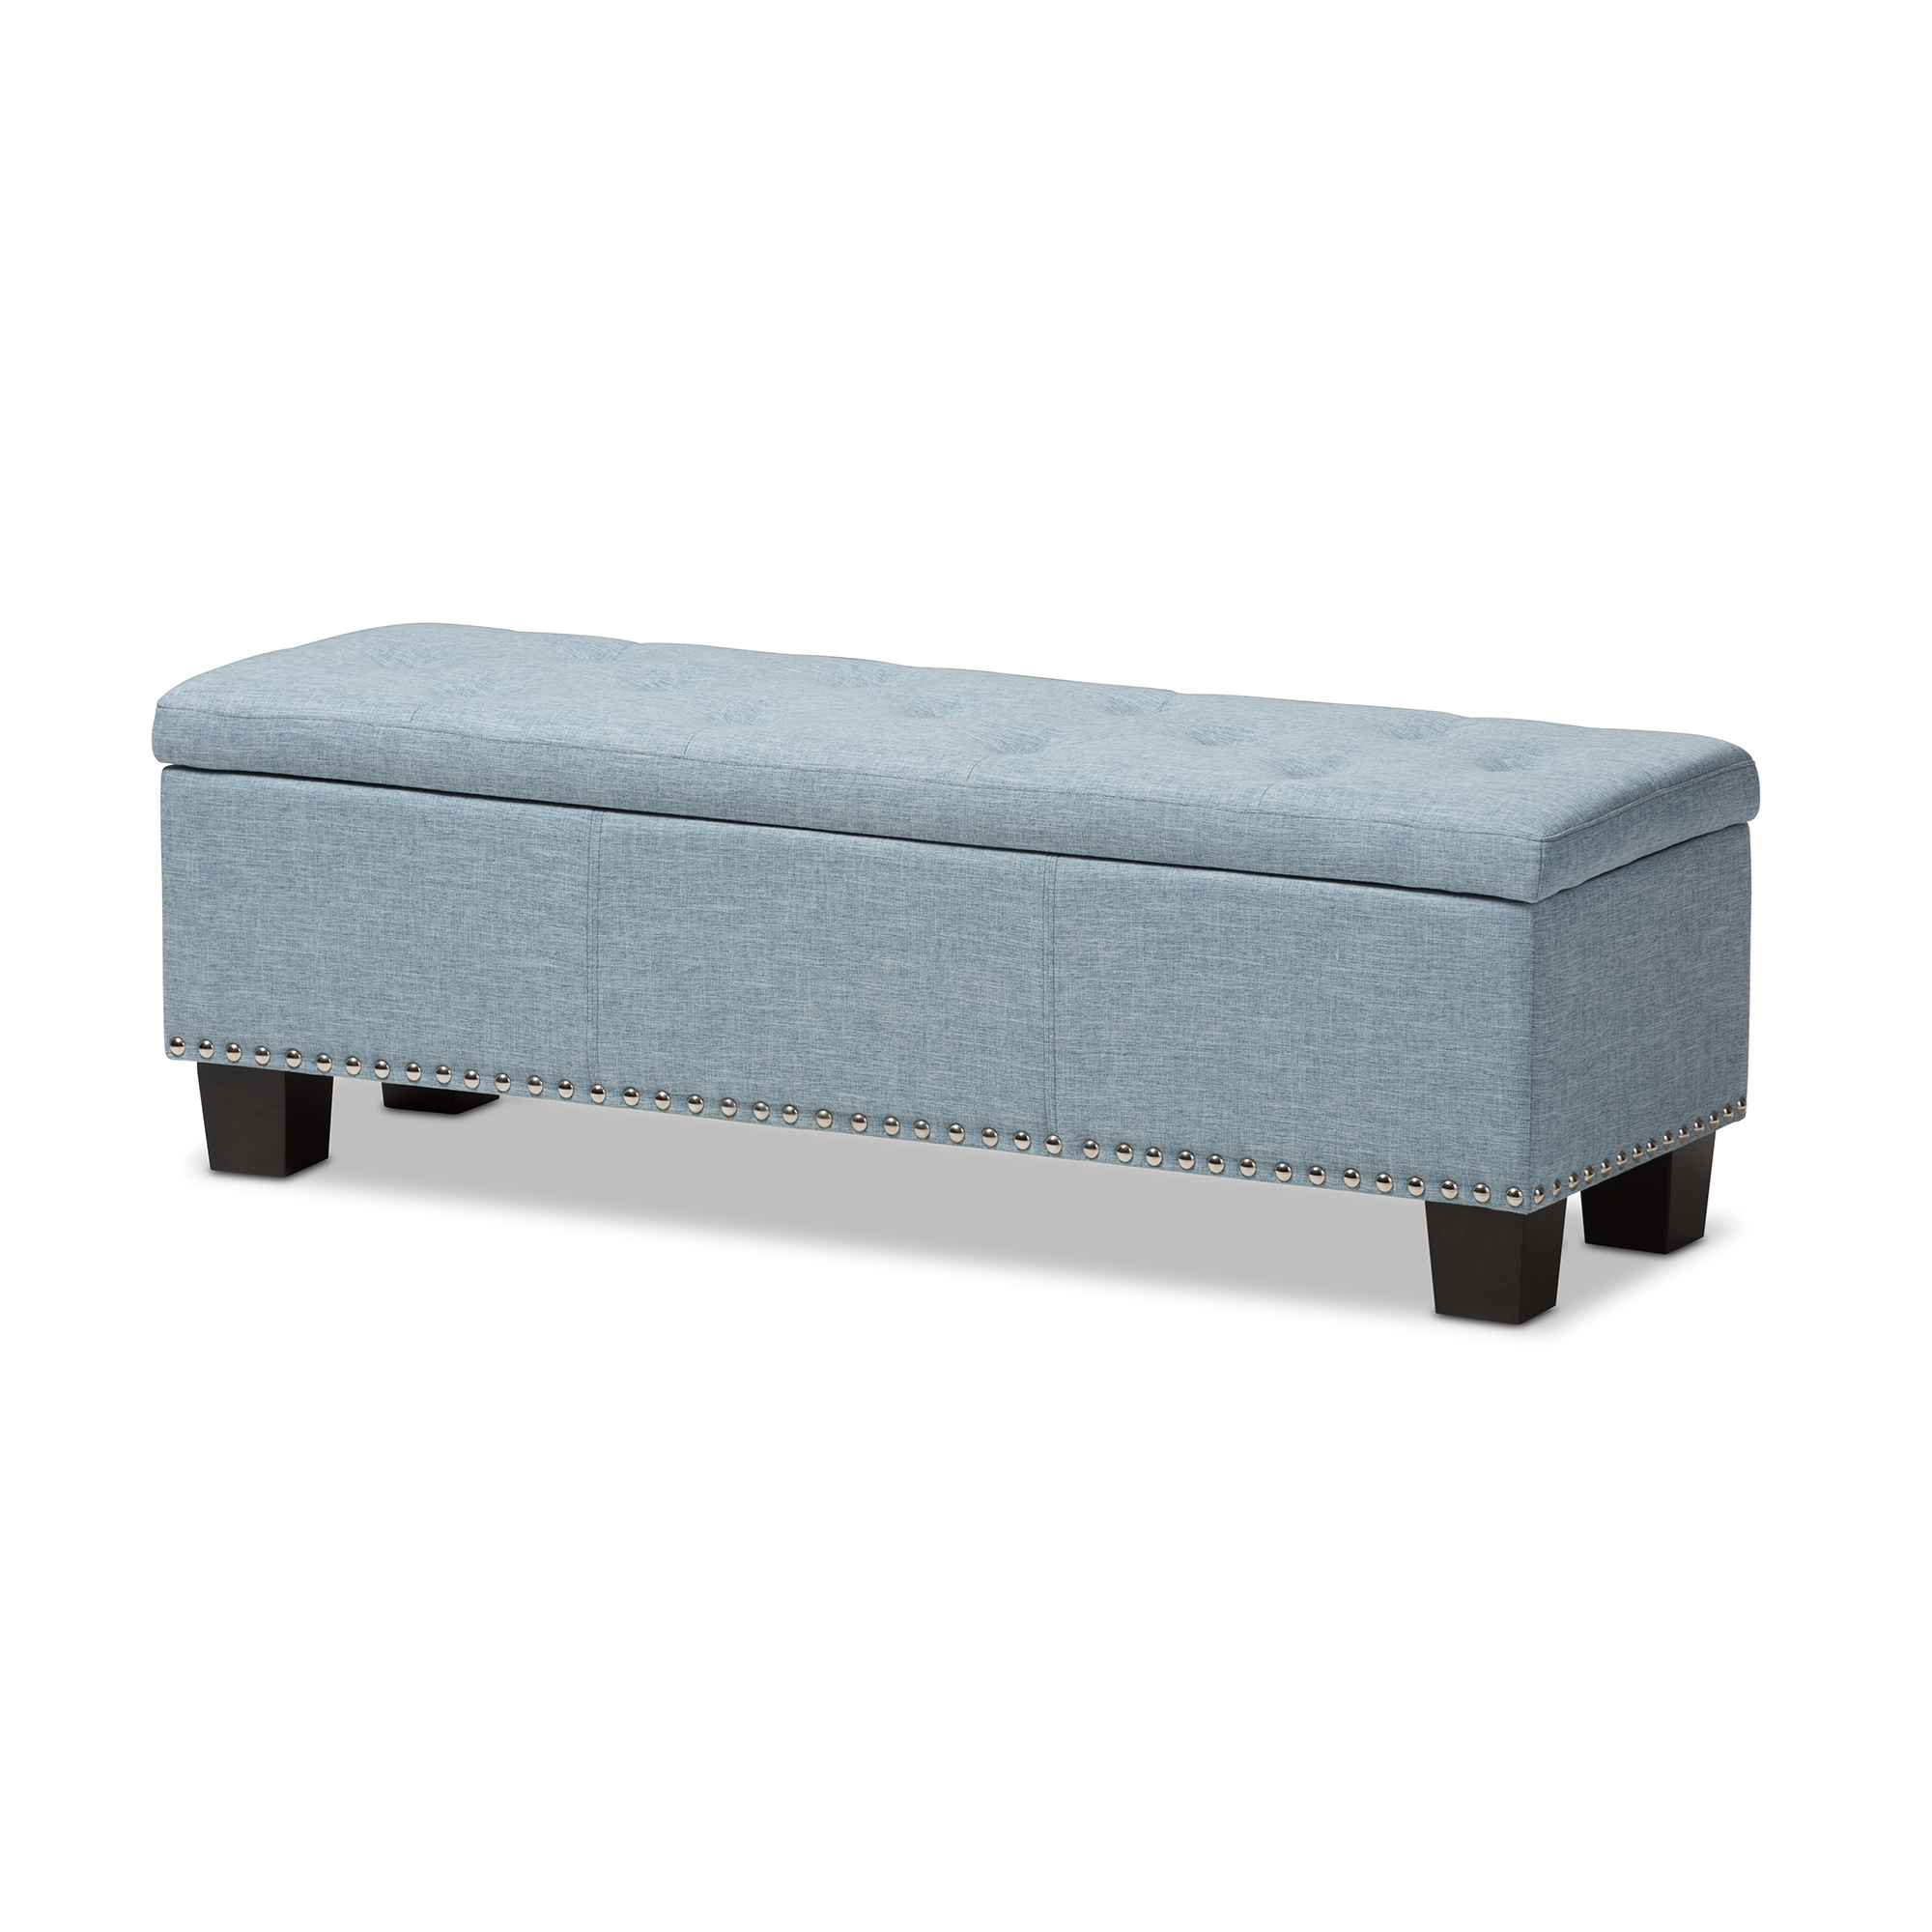 Baxton Studio Hannah Modern And Contemporary Light Blue Fabric Upholstered  Button Tufting Storage Ottoman Bench ...